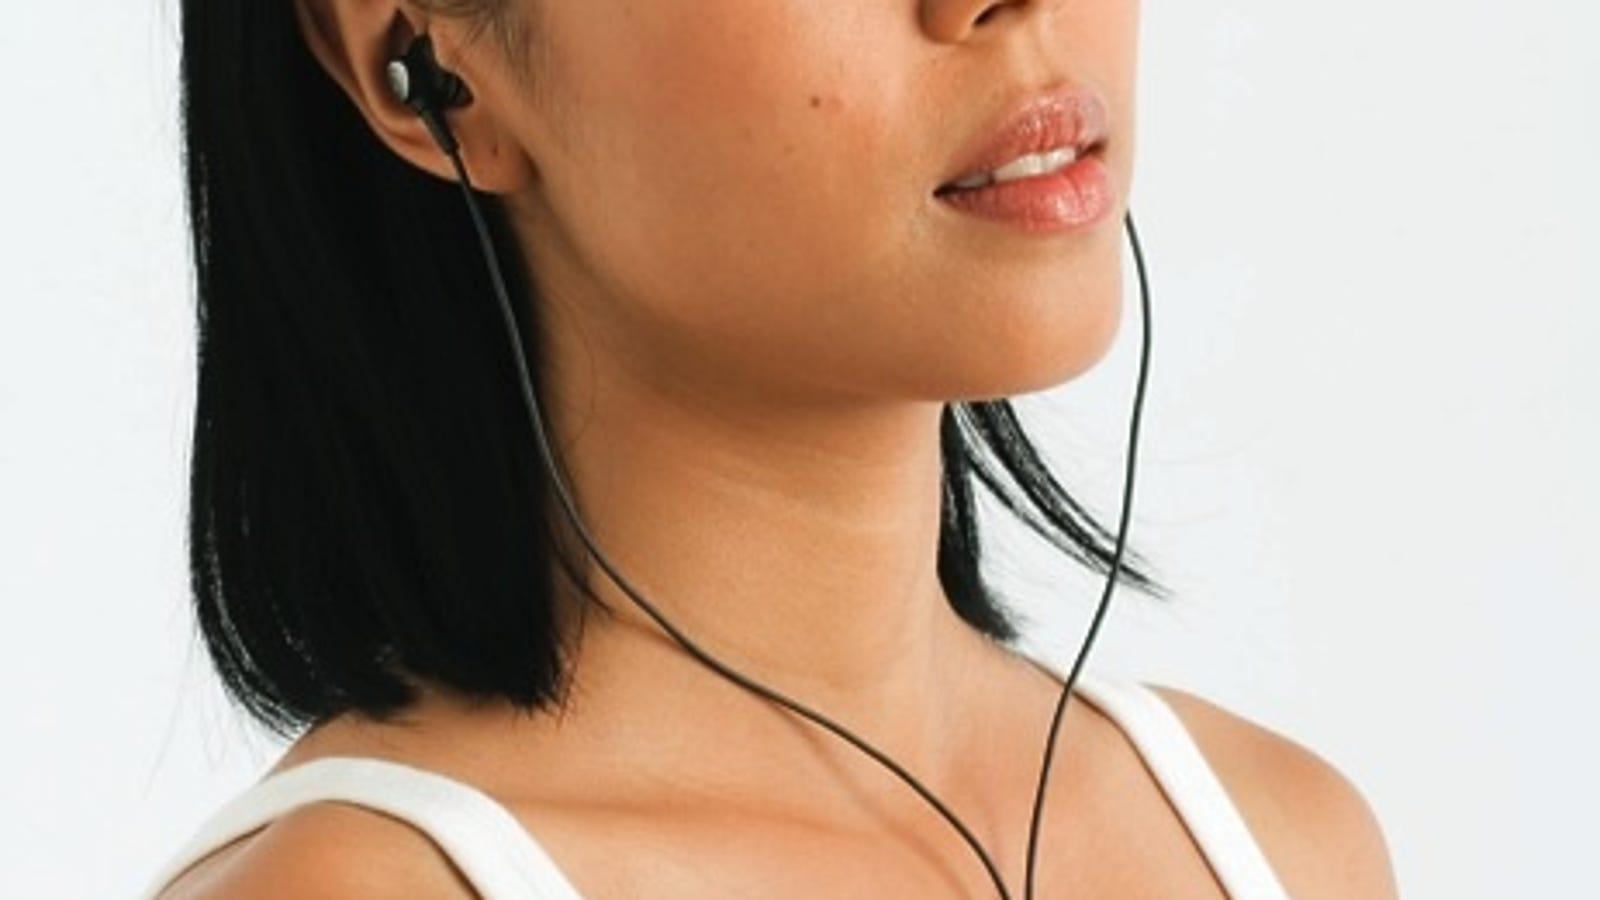 earphones clip over ear wireless